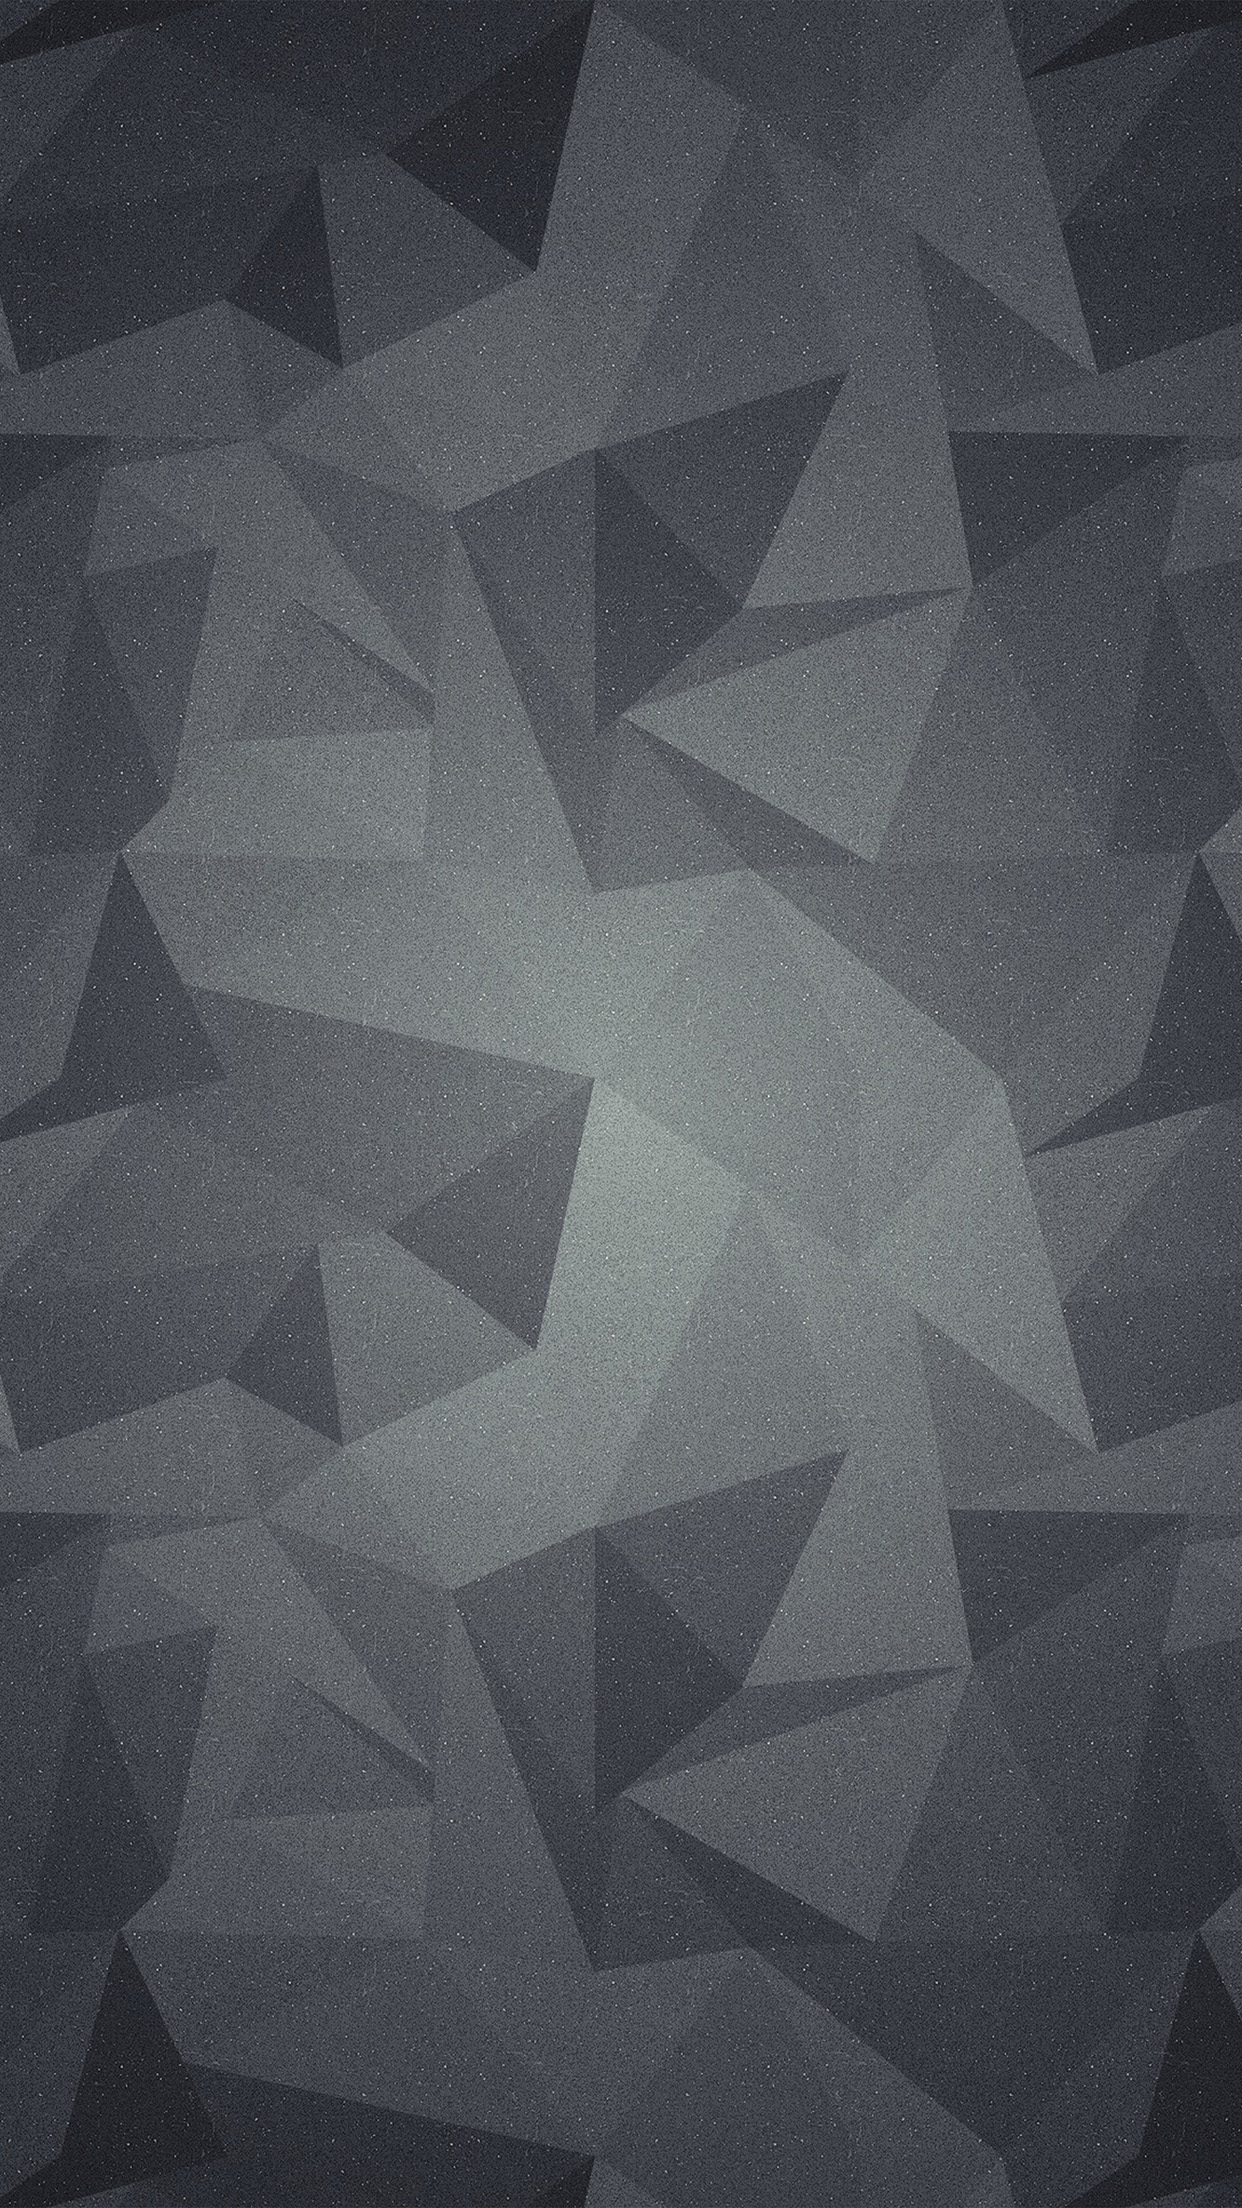 Abstract Polygon Dark Bw Pattern Android wallpaper